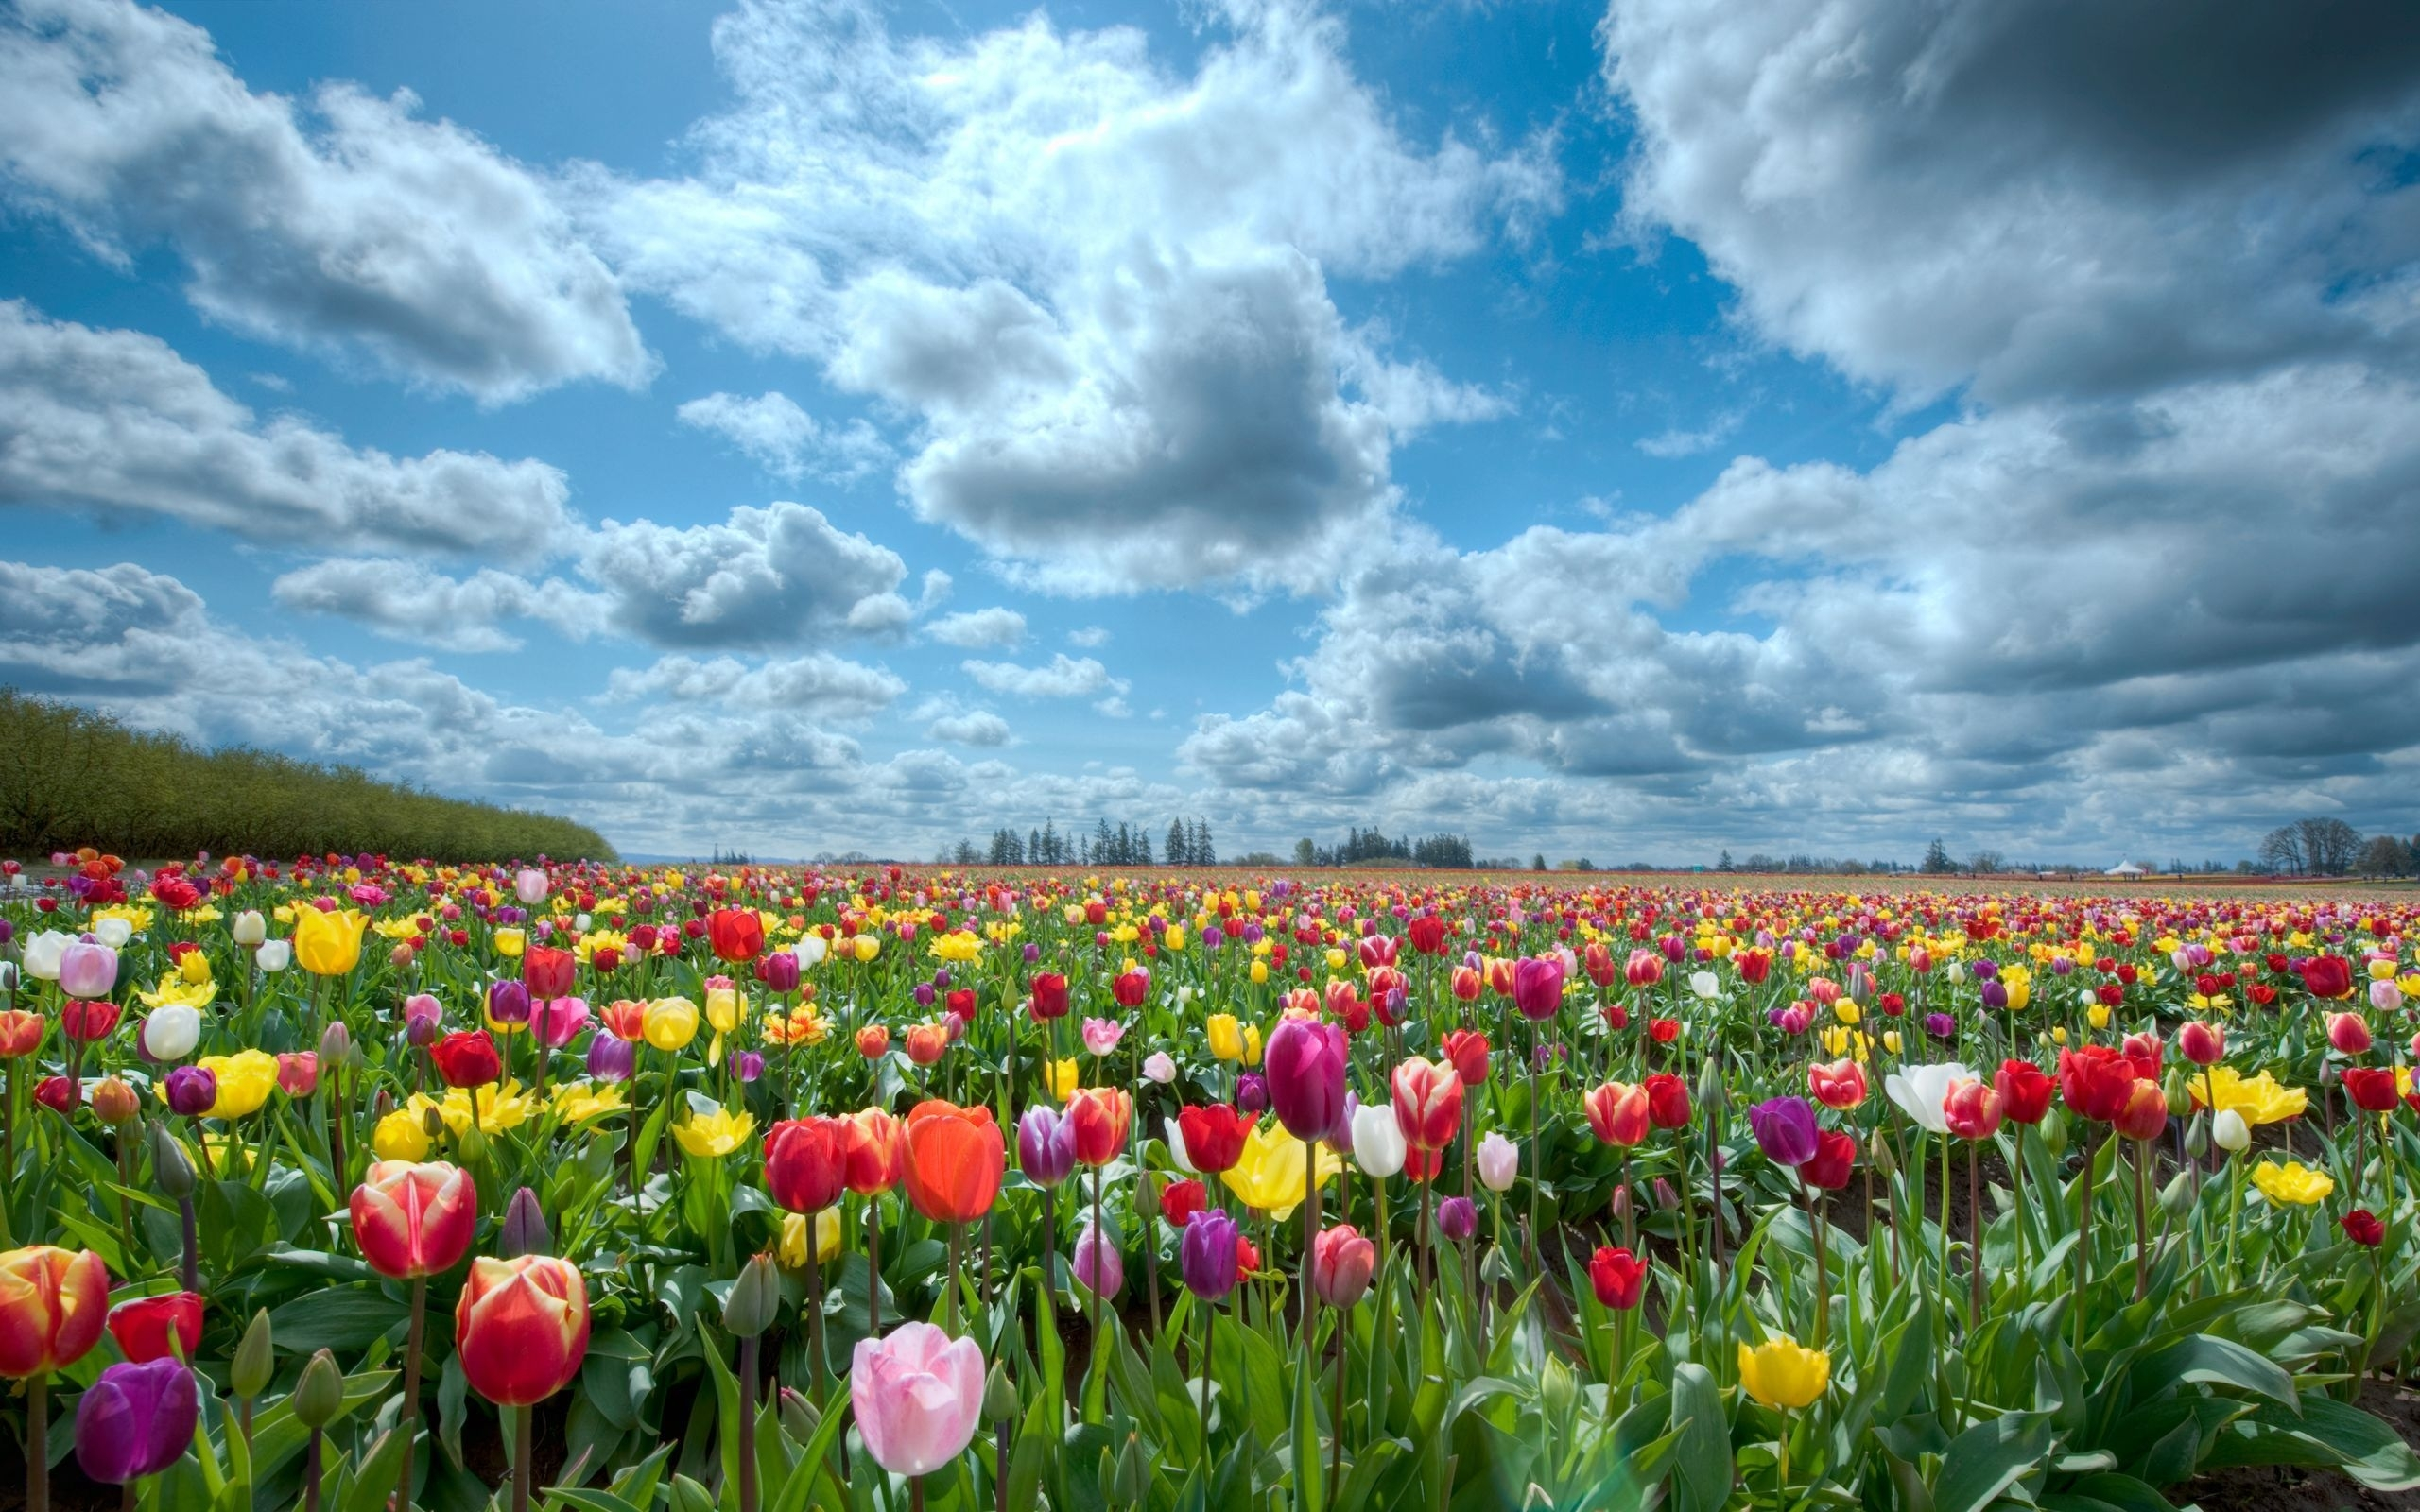 49918 download wallpaper Landscape, Flowers, Plants, Nature, Fields screensavers and pictures for free